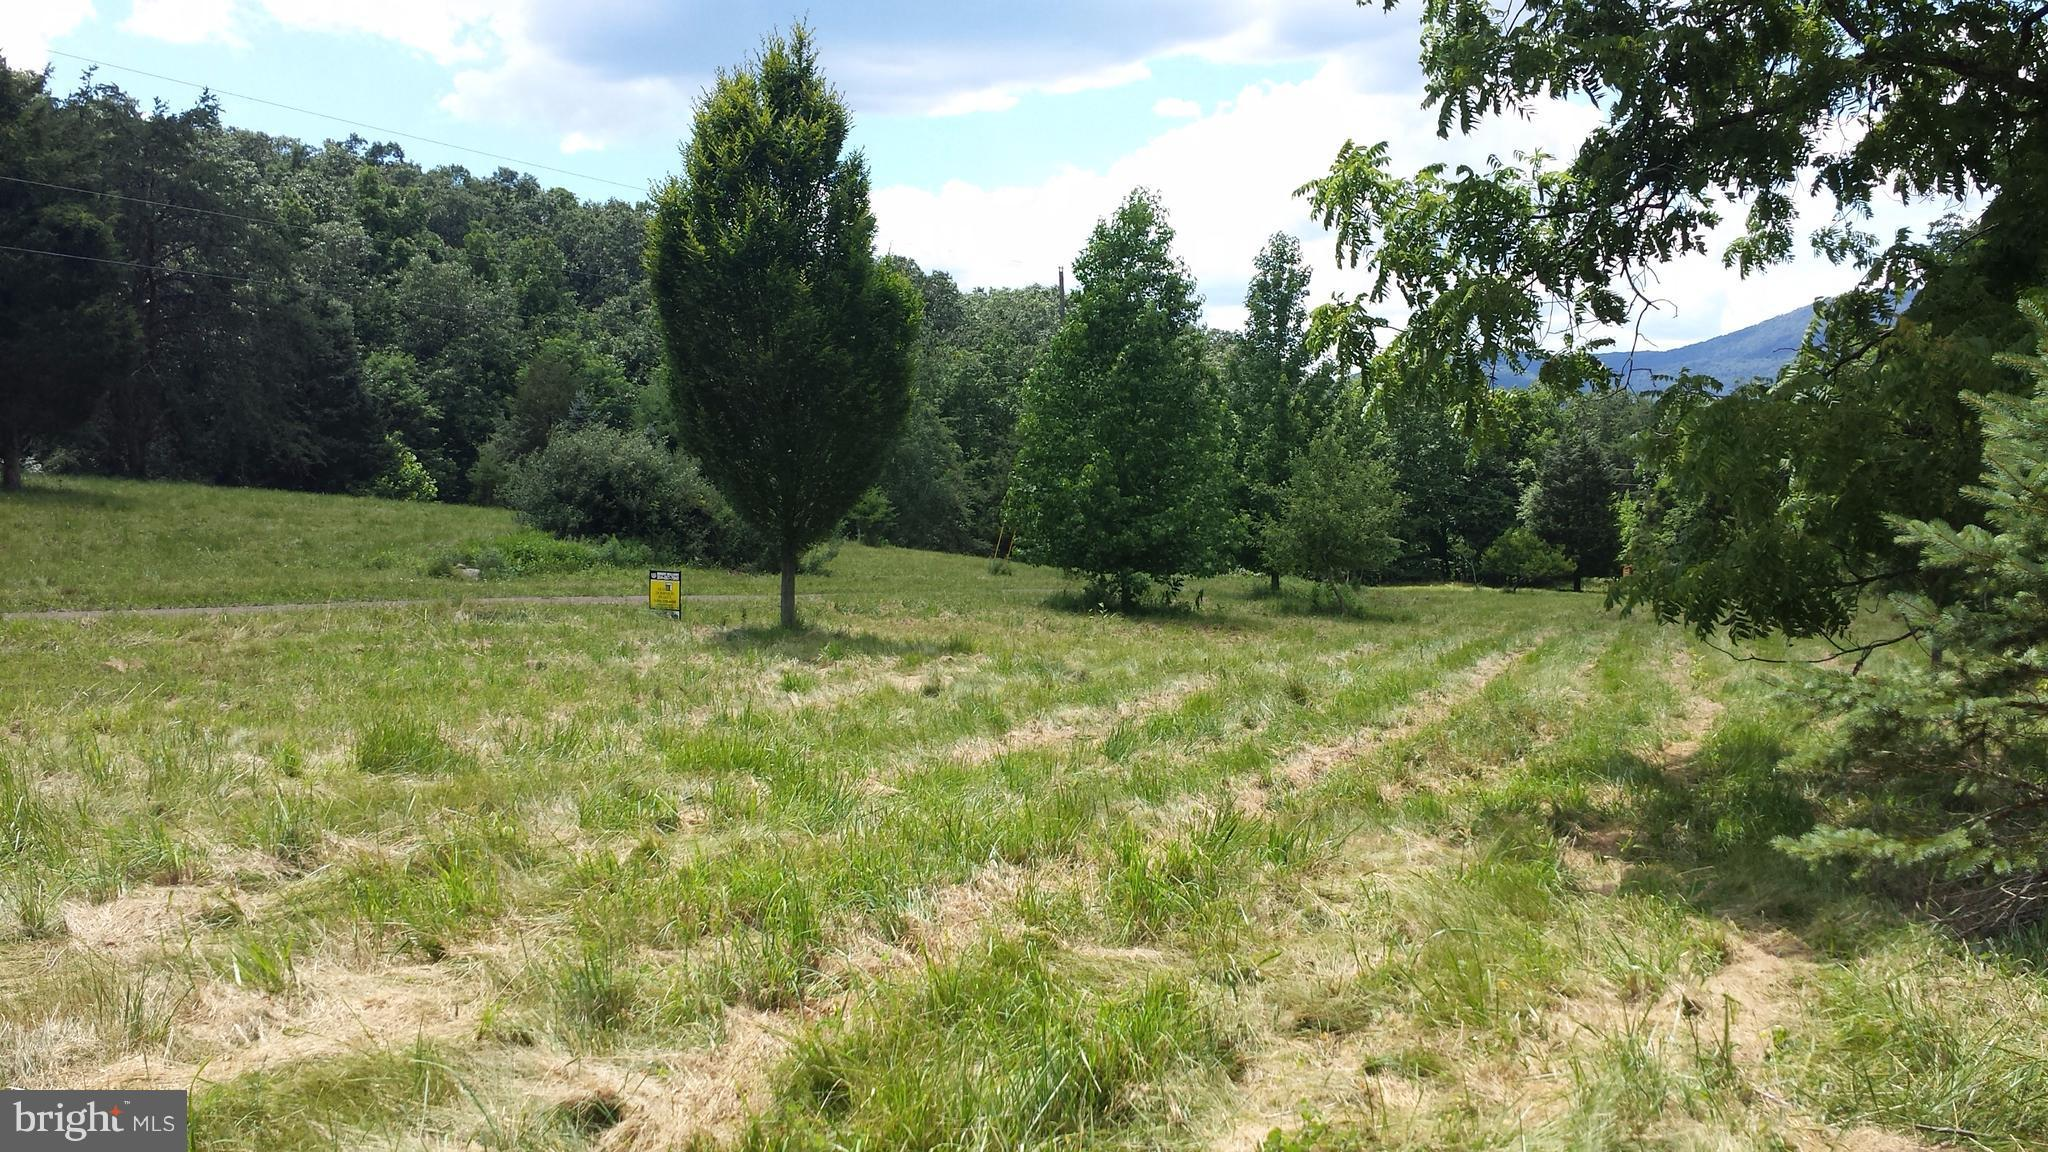 LOT E WEST BROOK ROAD, OLD FIELDS, WV 26845